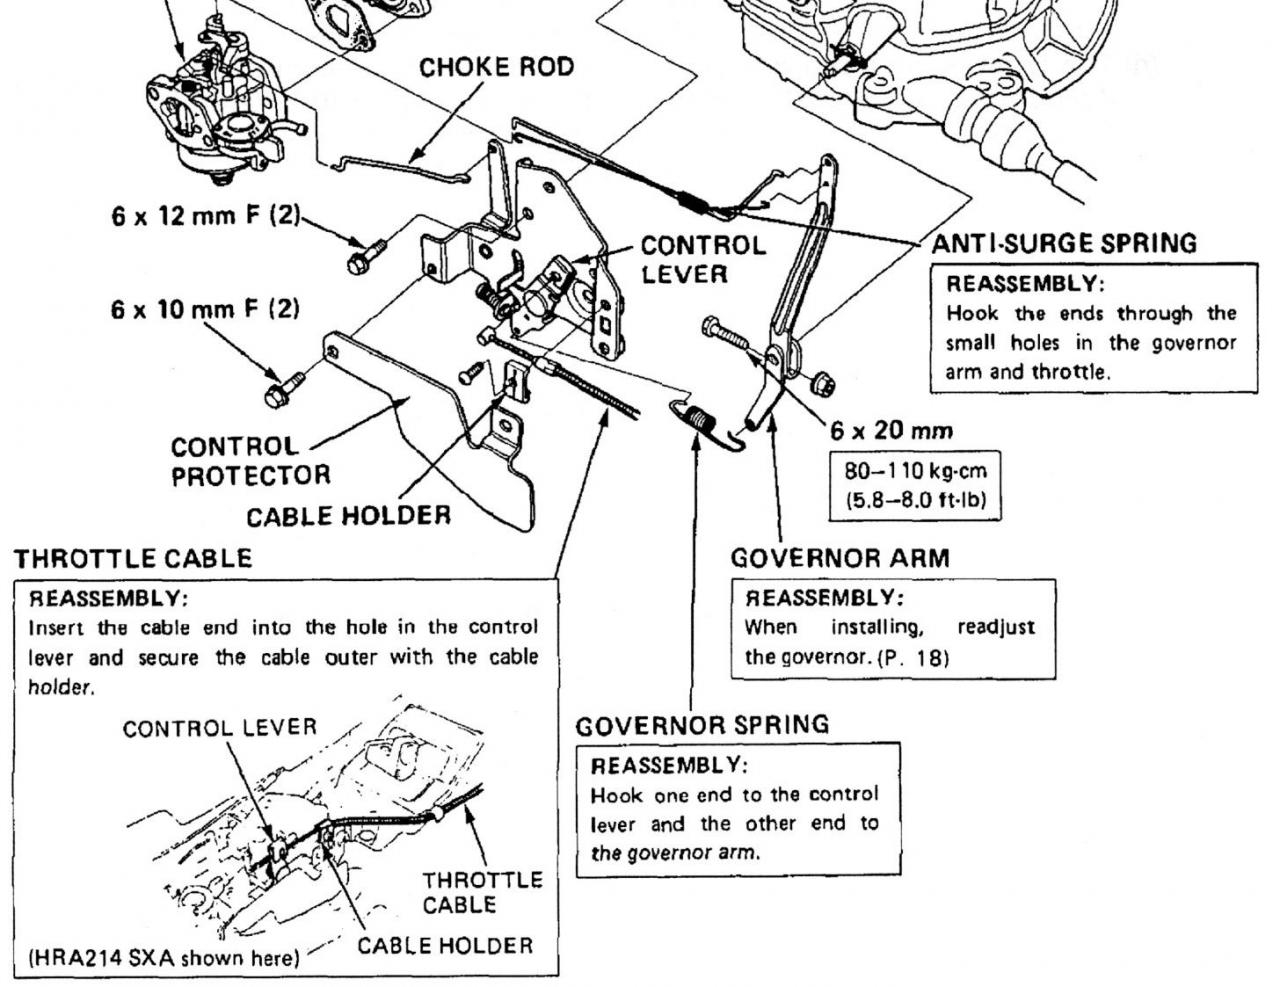 5Hp Briggs And Stratton Carburetor Diagram Need Diagram Of How To Connect The Carburetor Linkage On Wiring